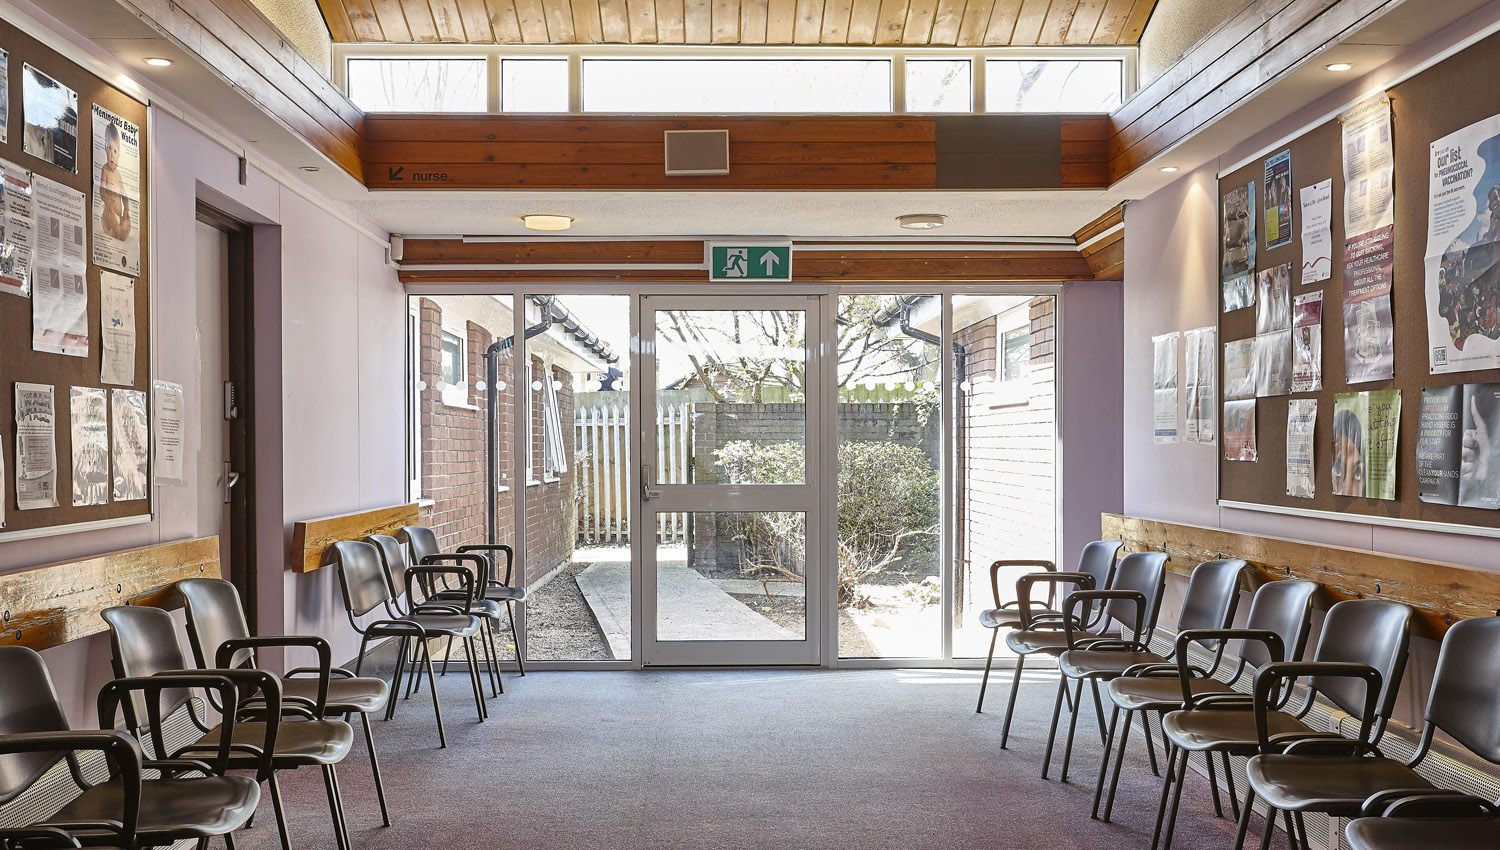 Replacement of windows and doors in Third <br/>Avenue Health Centre, Canvey Island